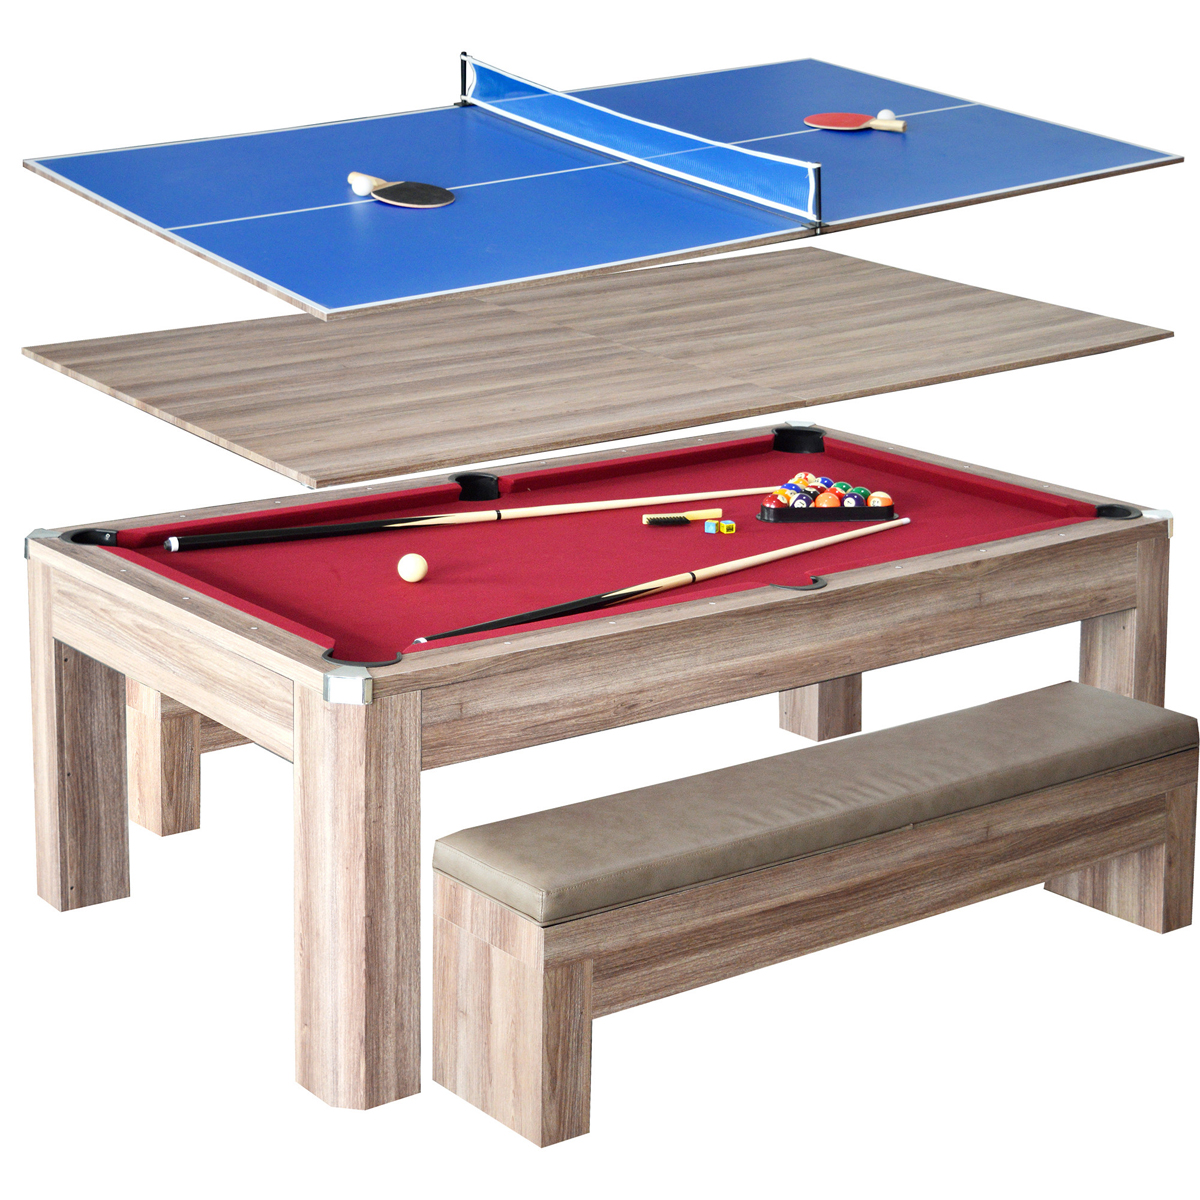 7 newport pool table set with benches - Pool table table tennis ...